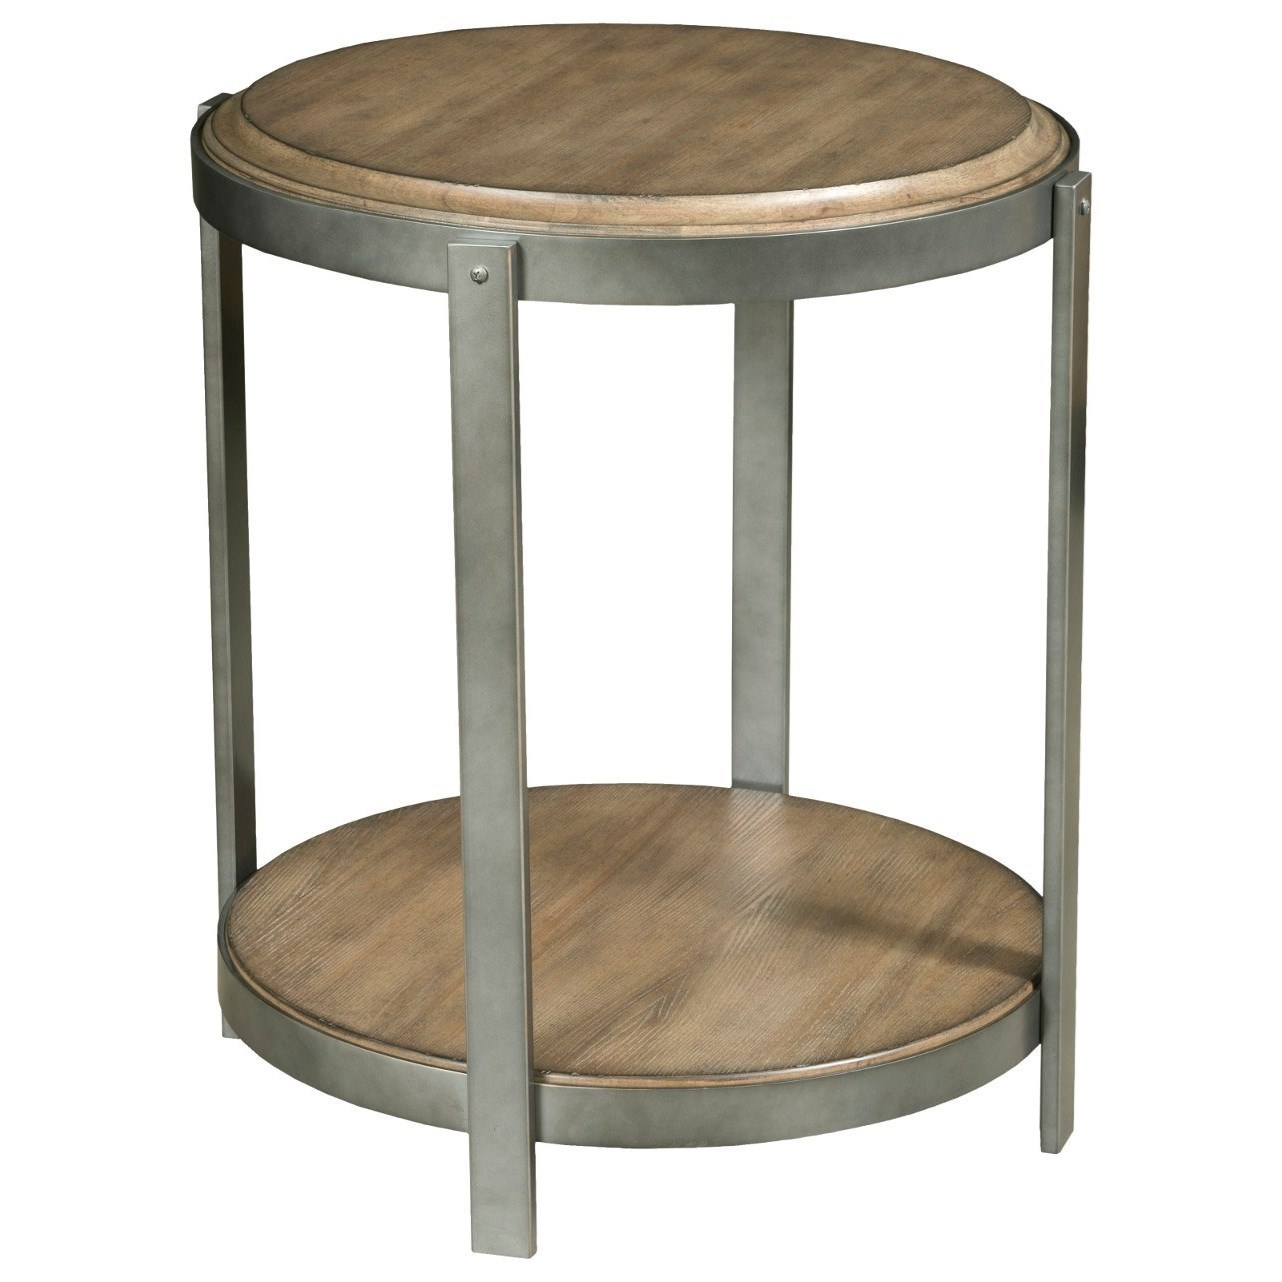 american drew evoke round accent table northeast factory products color with drawer item number chests and trunks counter height white sofa covers free quilted placemat patterns